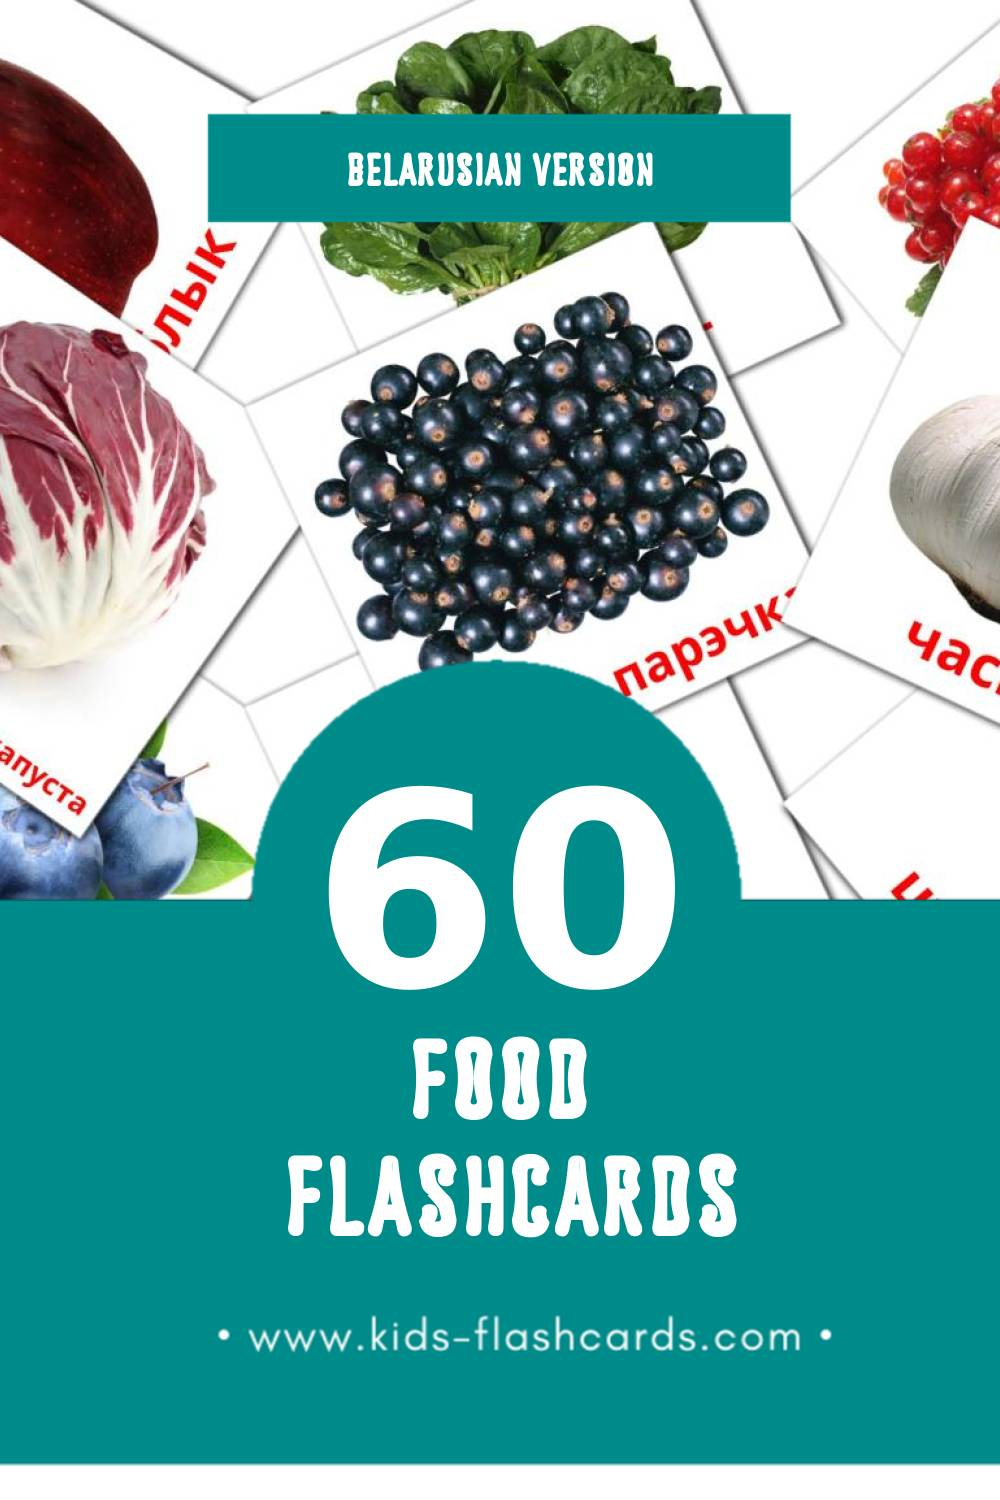 Visual Ежа Flashcards for Toddlers (60 cards in Belarusian)